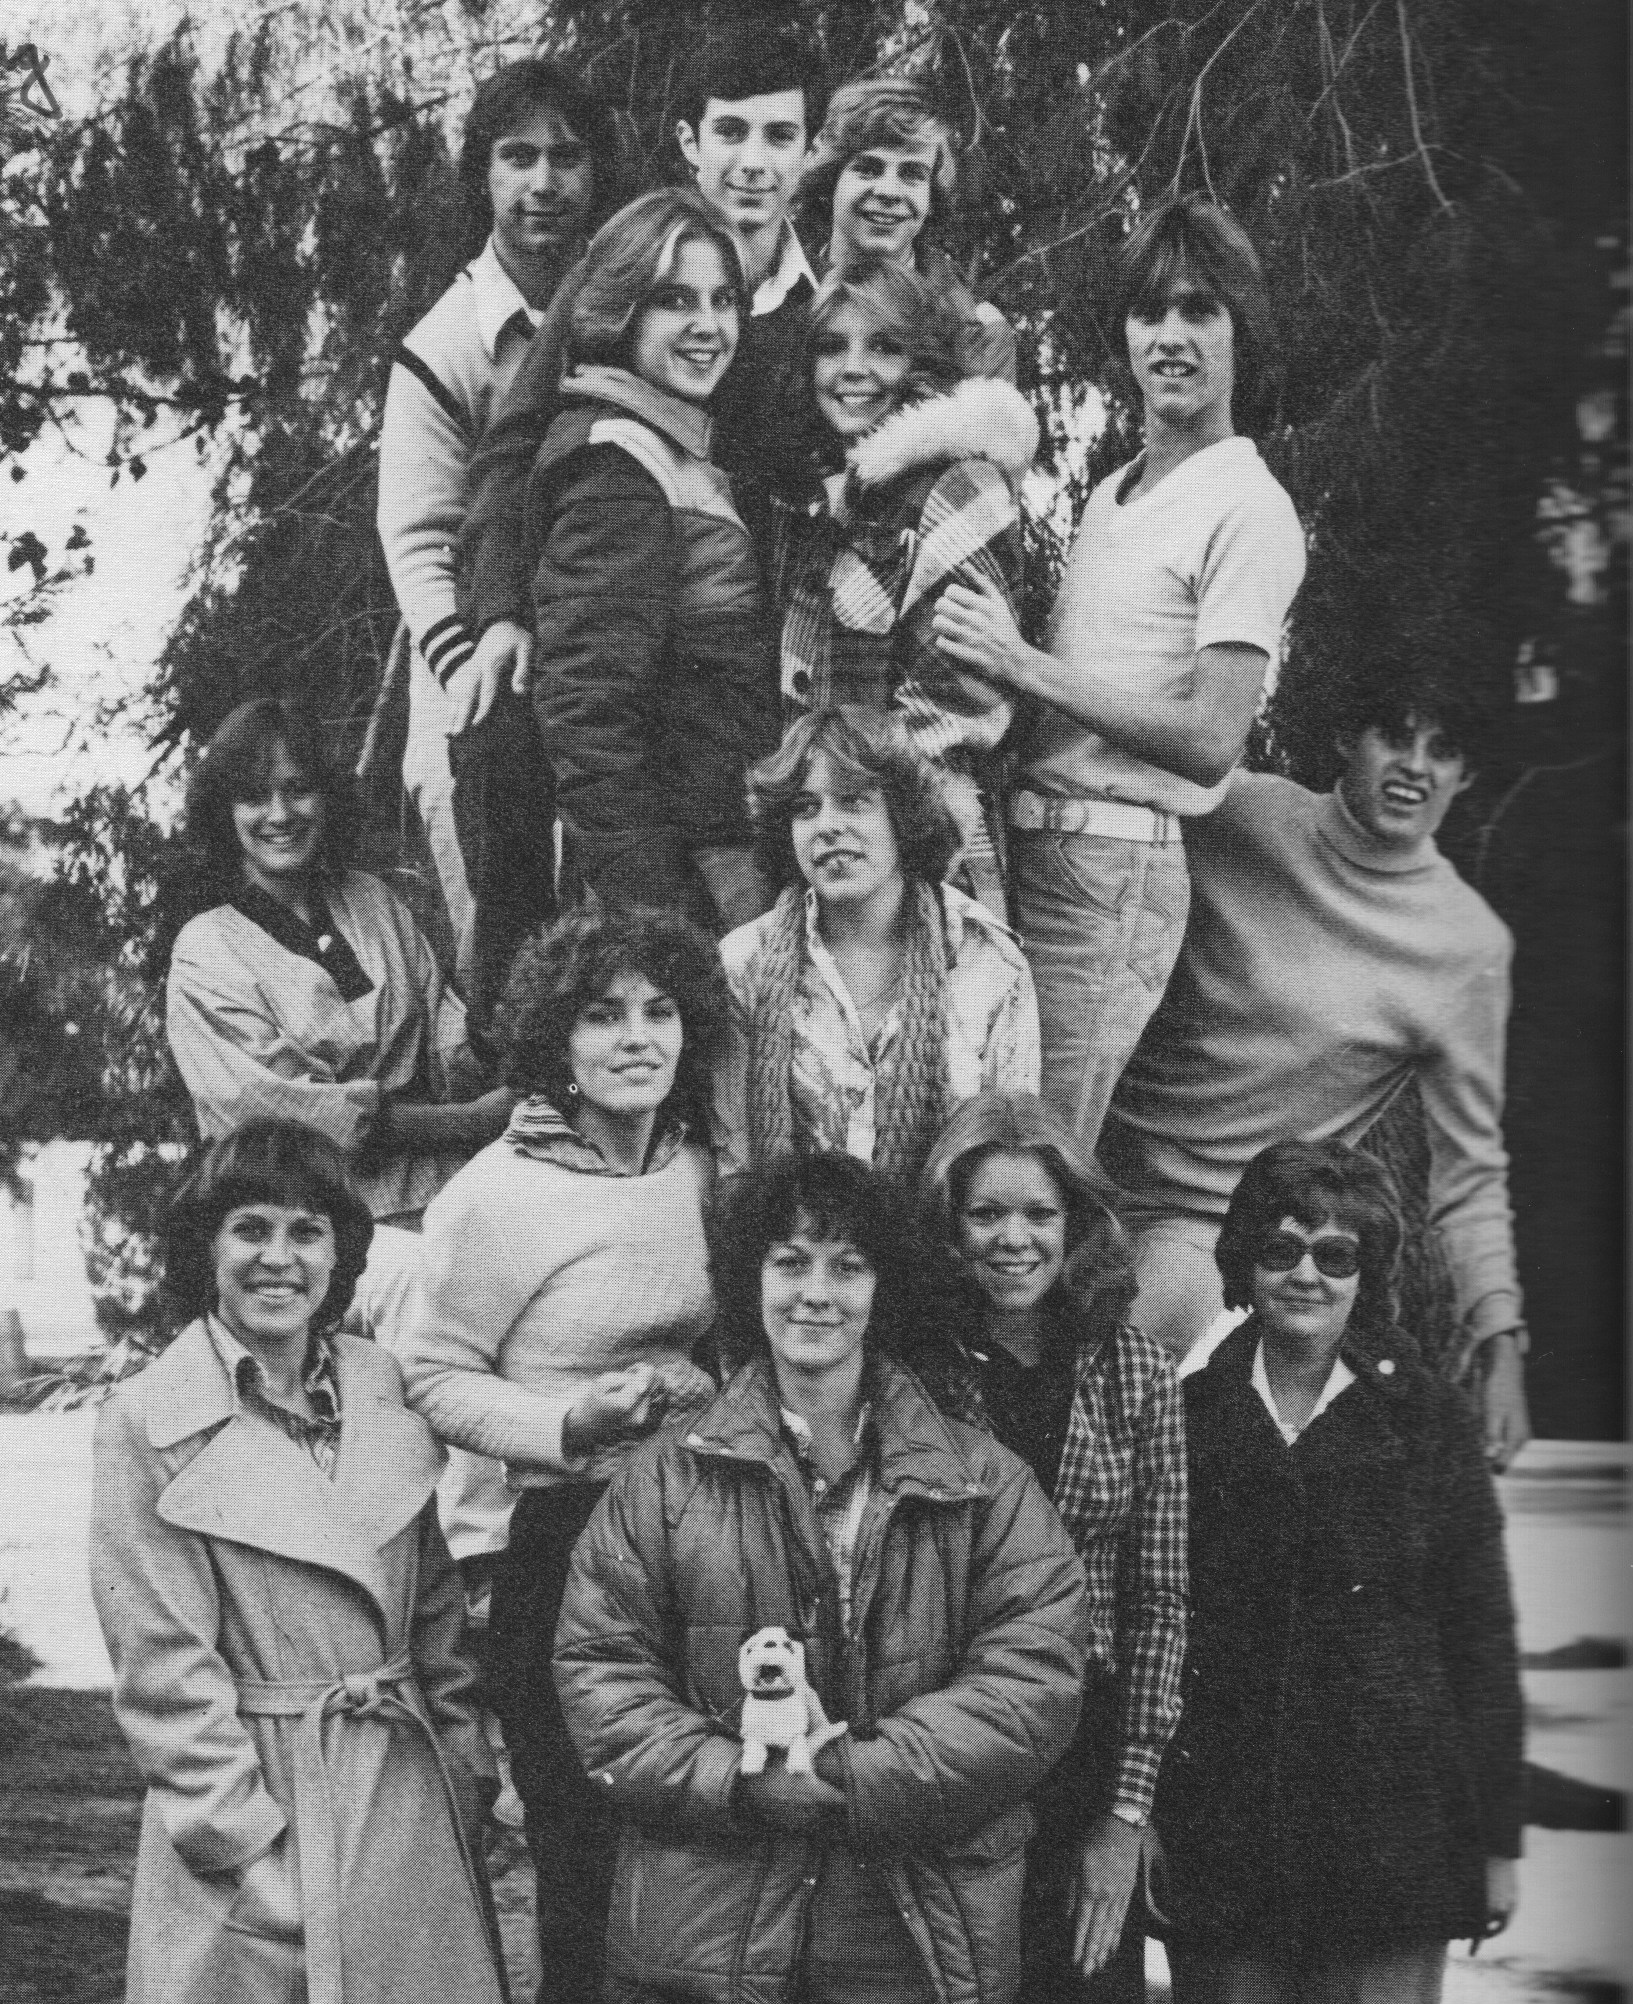 One of the few photos I have with Miss Goehring and I together in the same photo, along with our 1979 thespian group. I'm in the turtle neck on the opposite side.